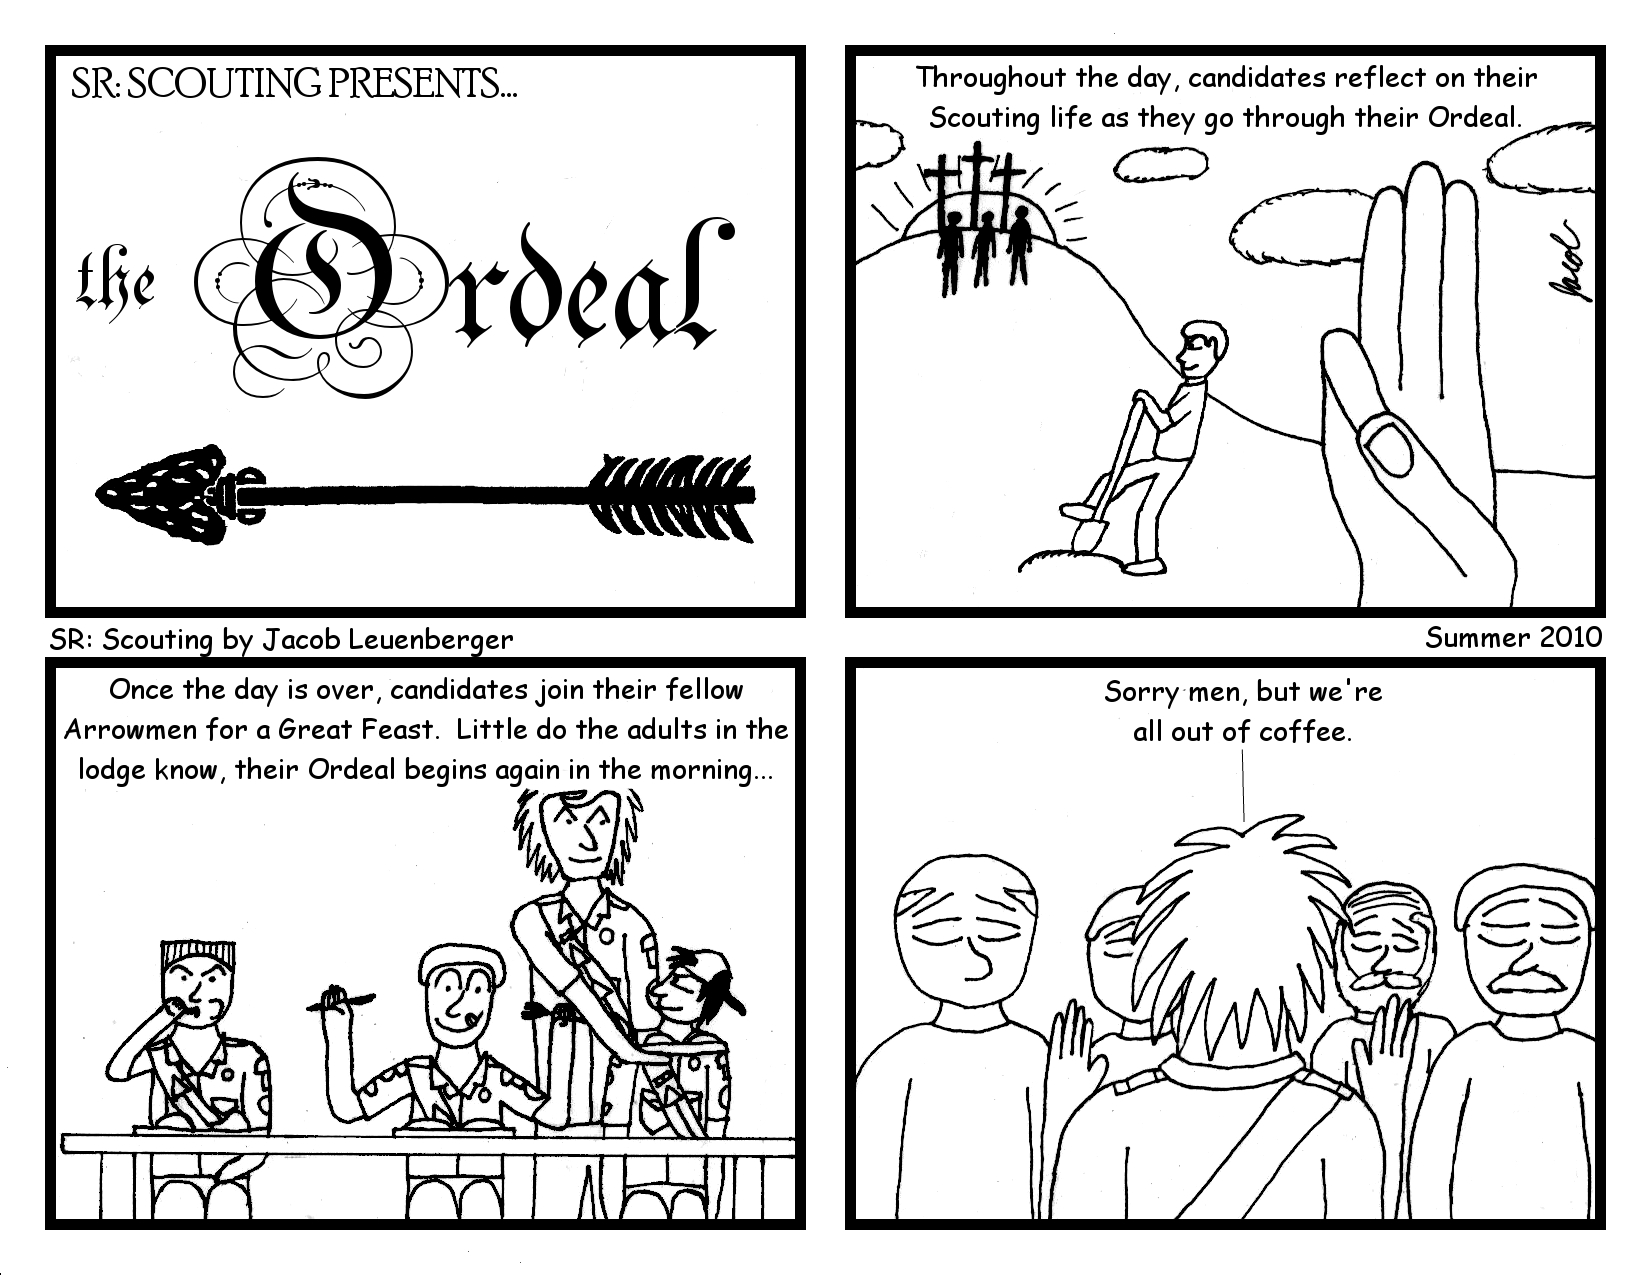 The long lost comic of the Sundial!